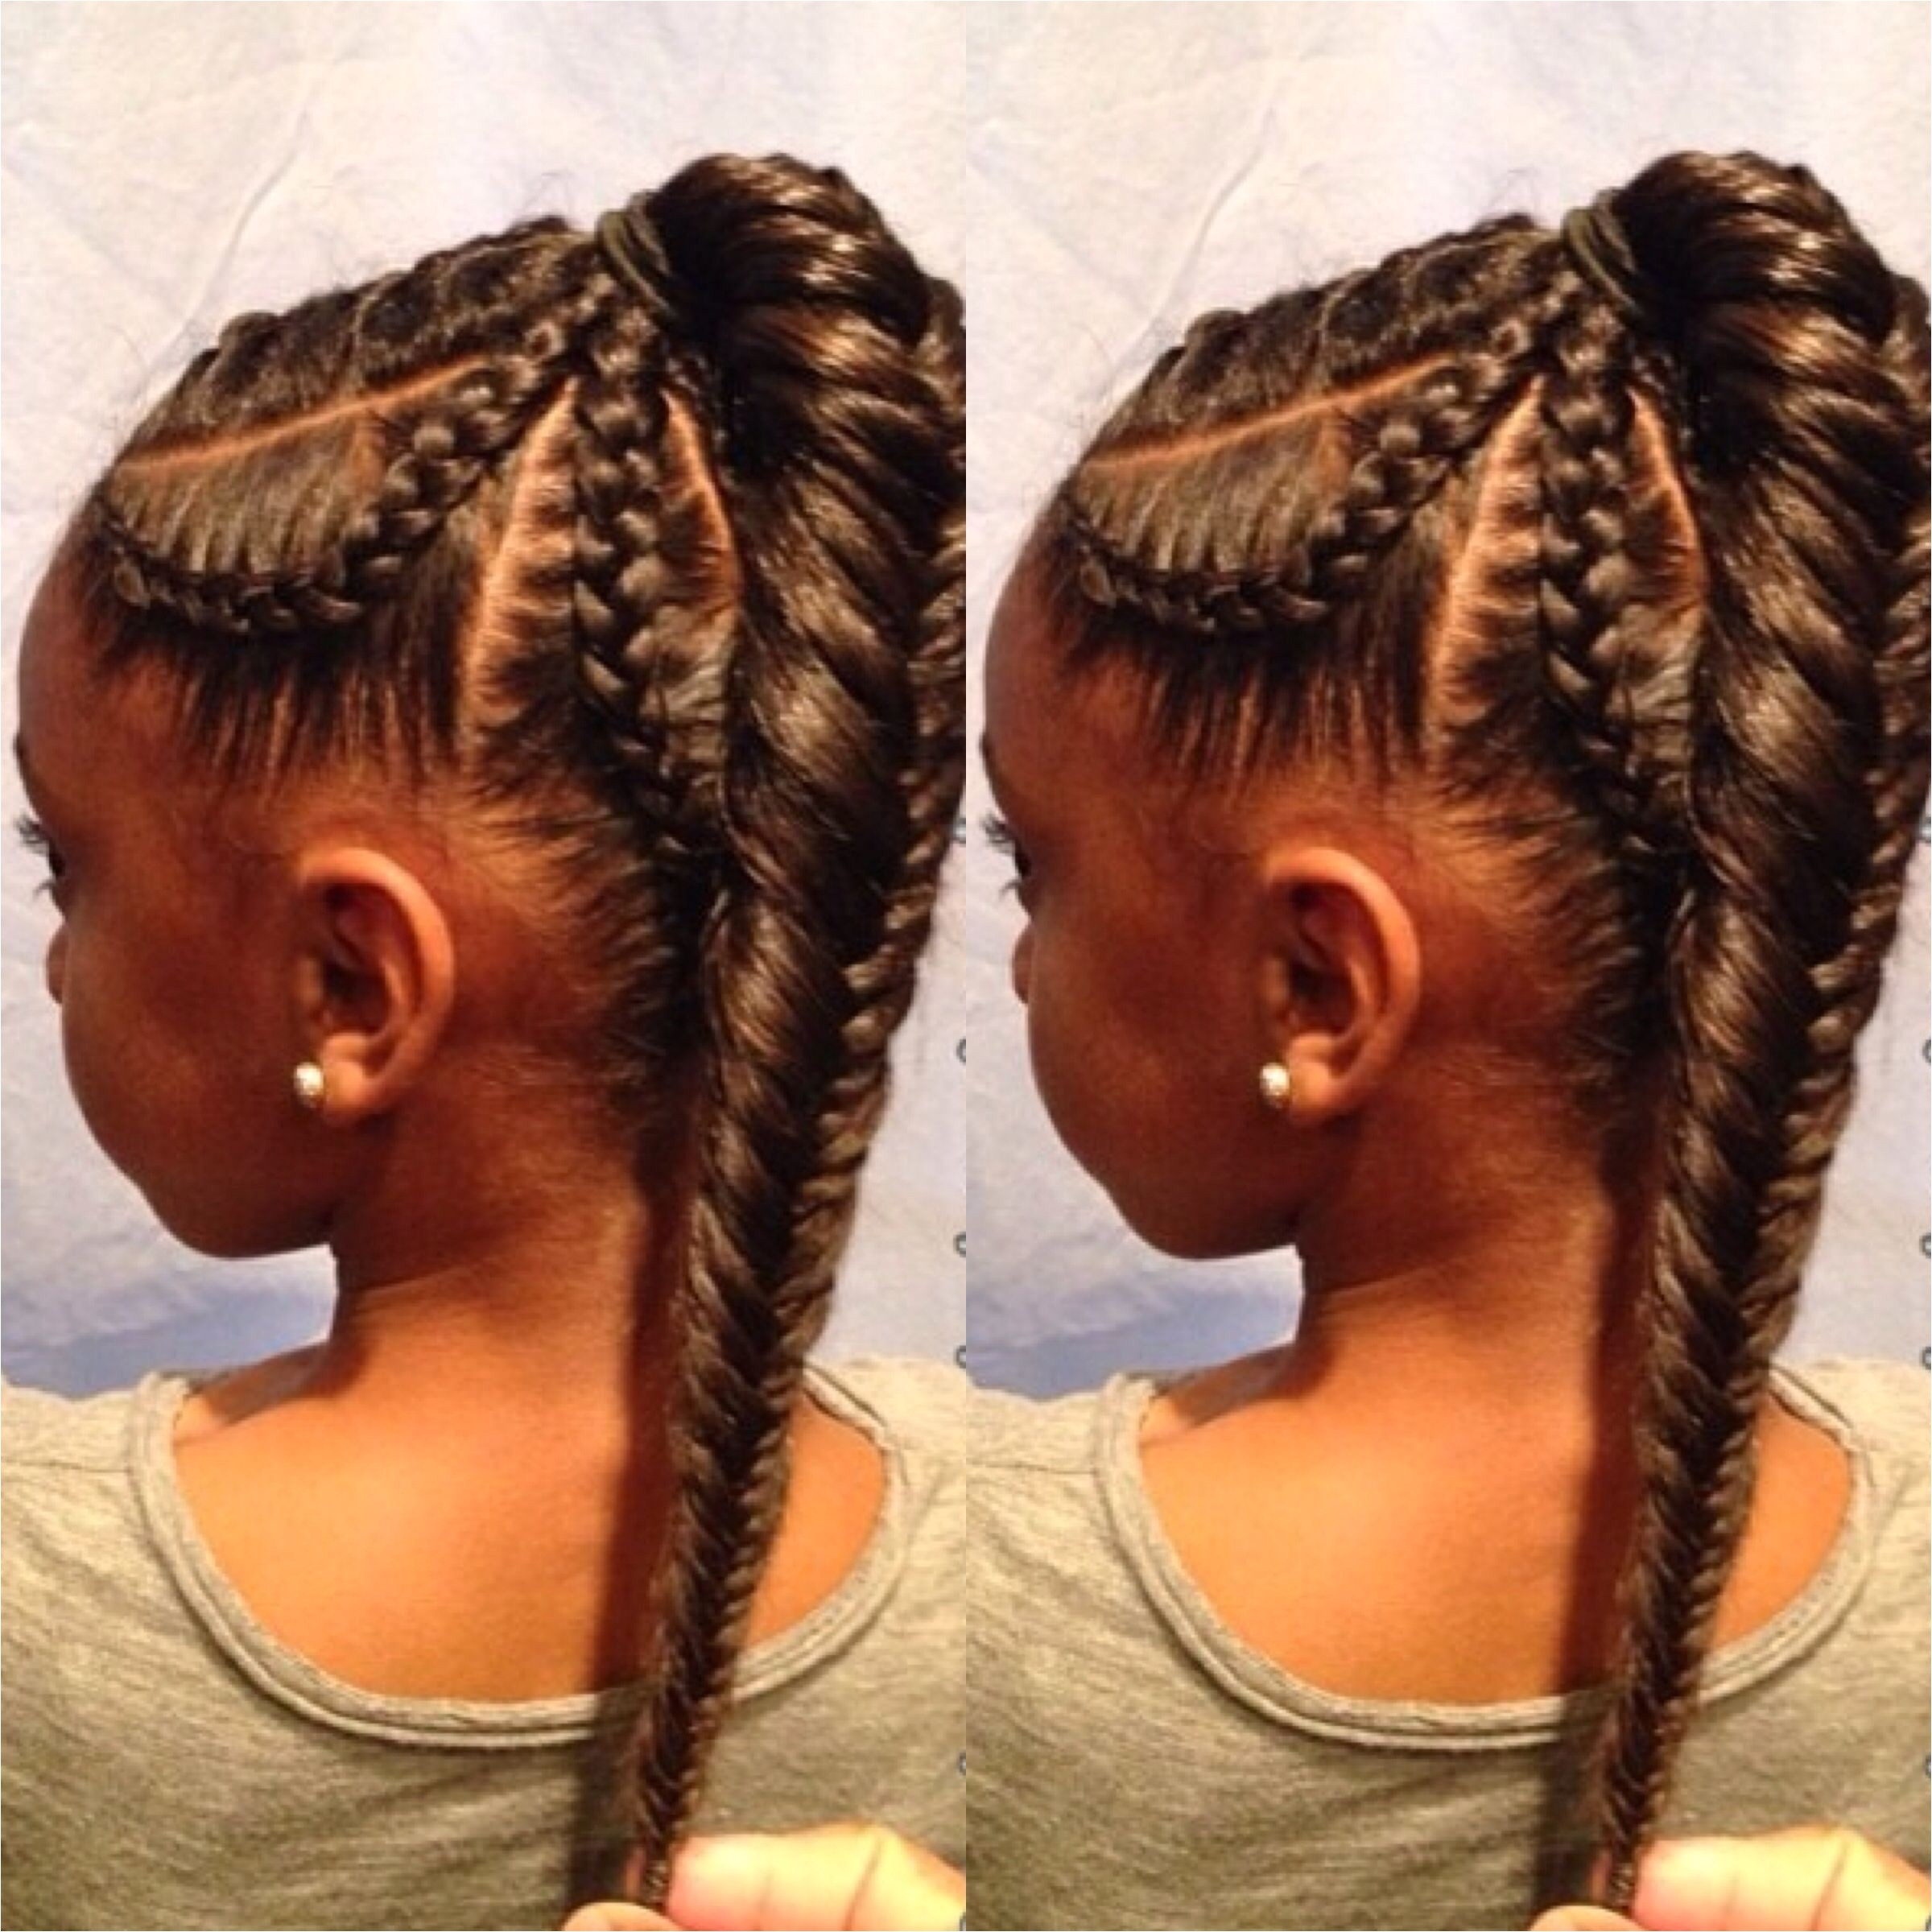 5 braid cornrow fishtail ponytail Black girl hairstyles